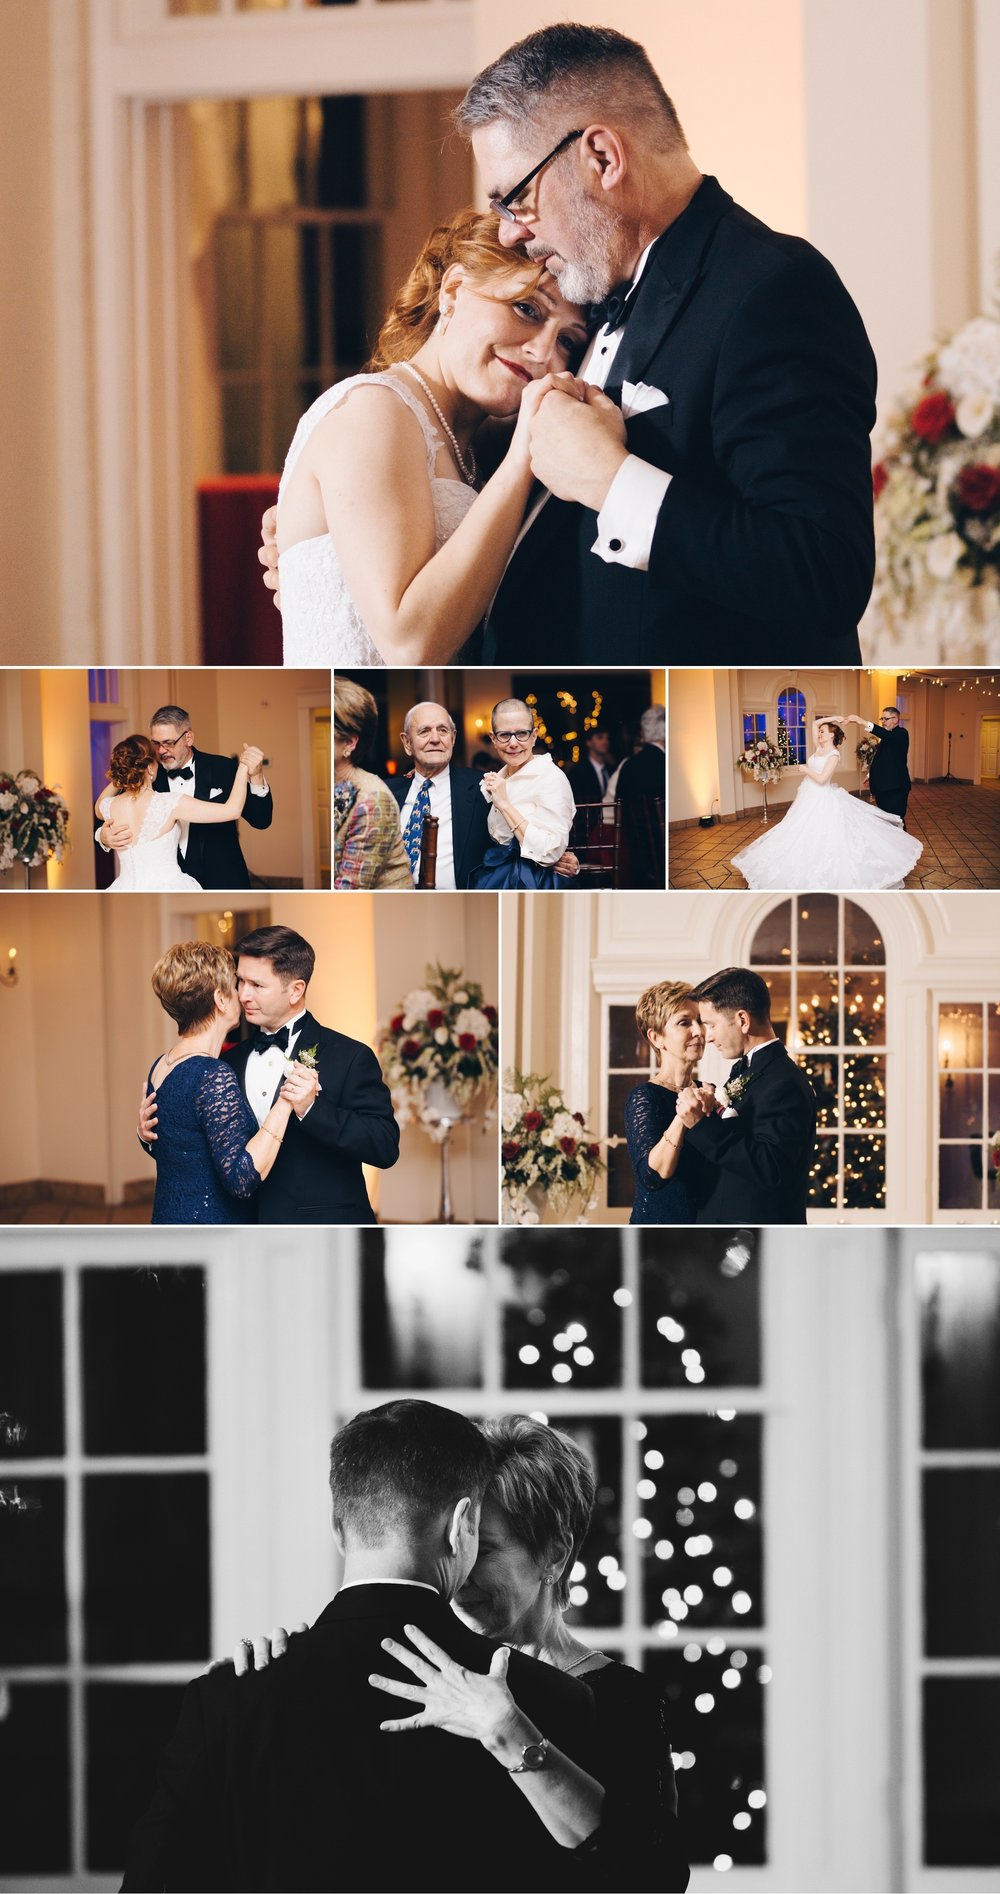 Scott and Brynn's Winter Estate Wedding at Whitehall Estate in Bluemont VA by Jonathan Hannah Photography